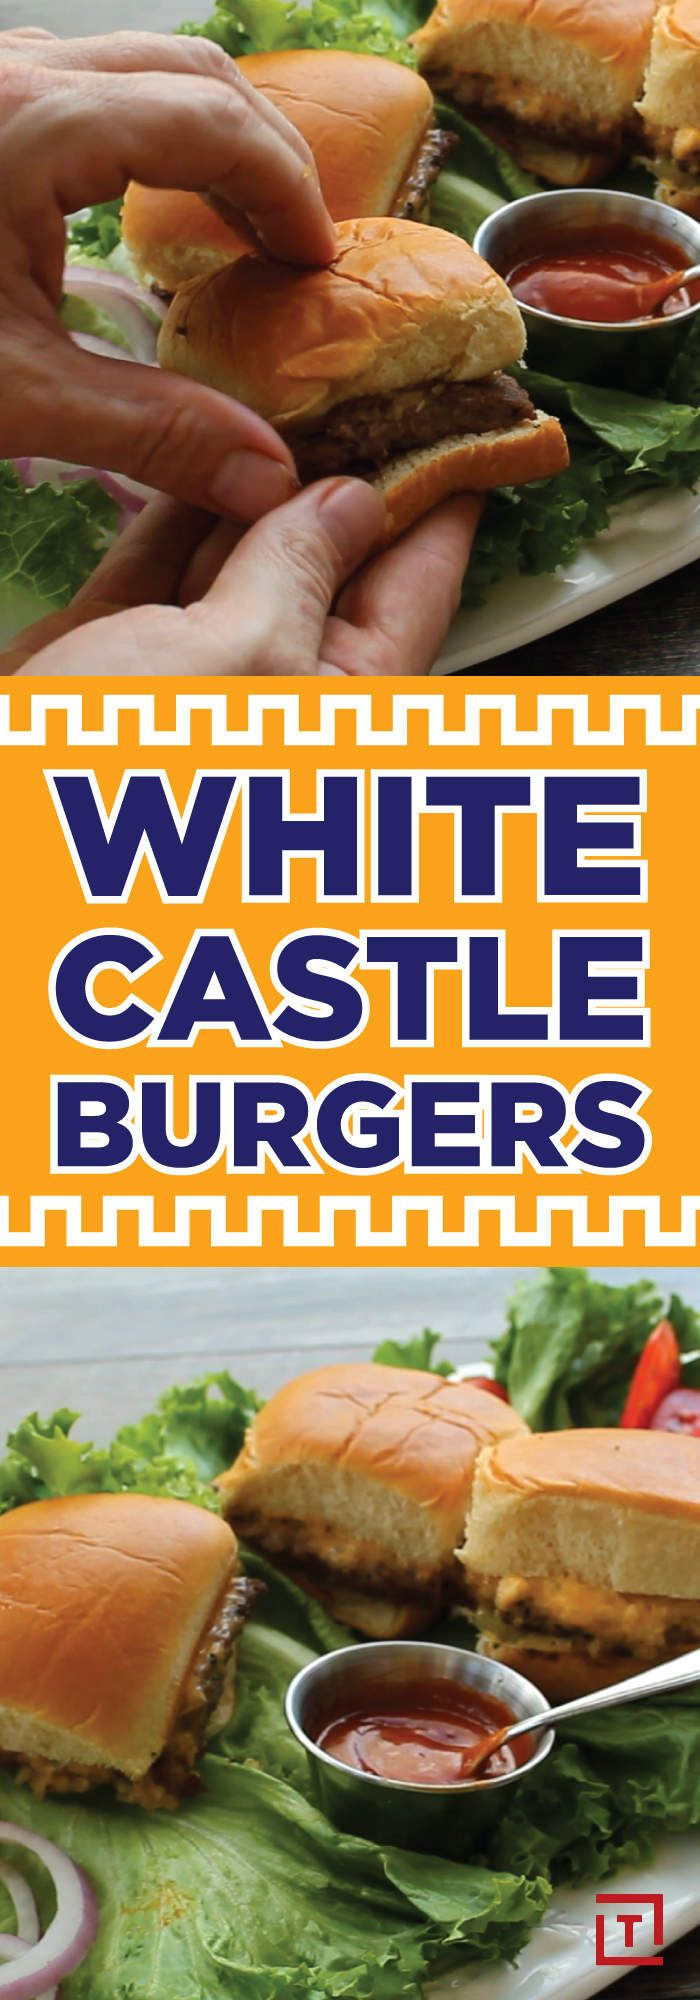 Need your White Castle fix? Here's how to make their iconic sliders right at home.